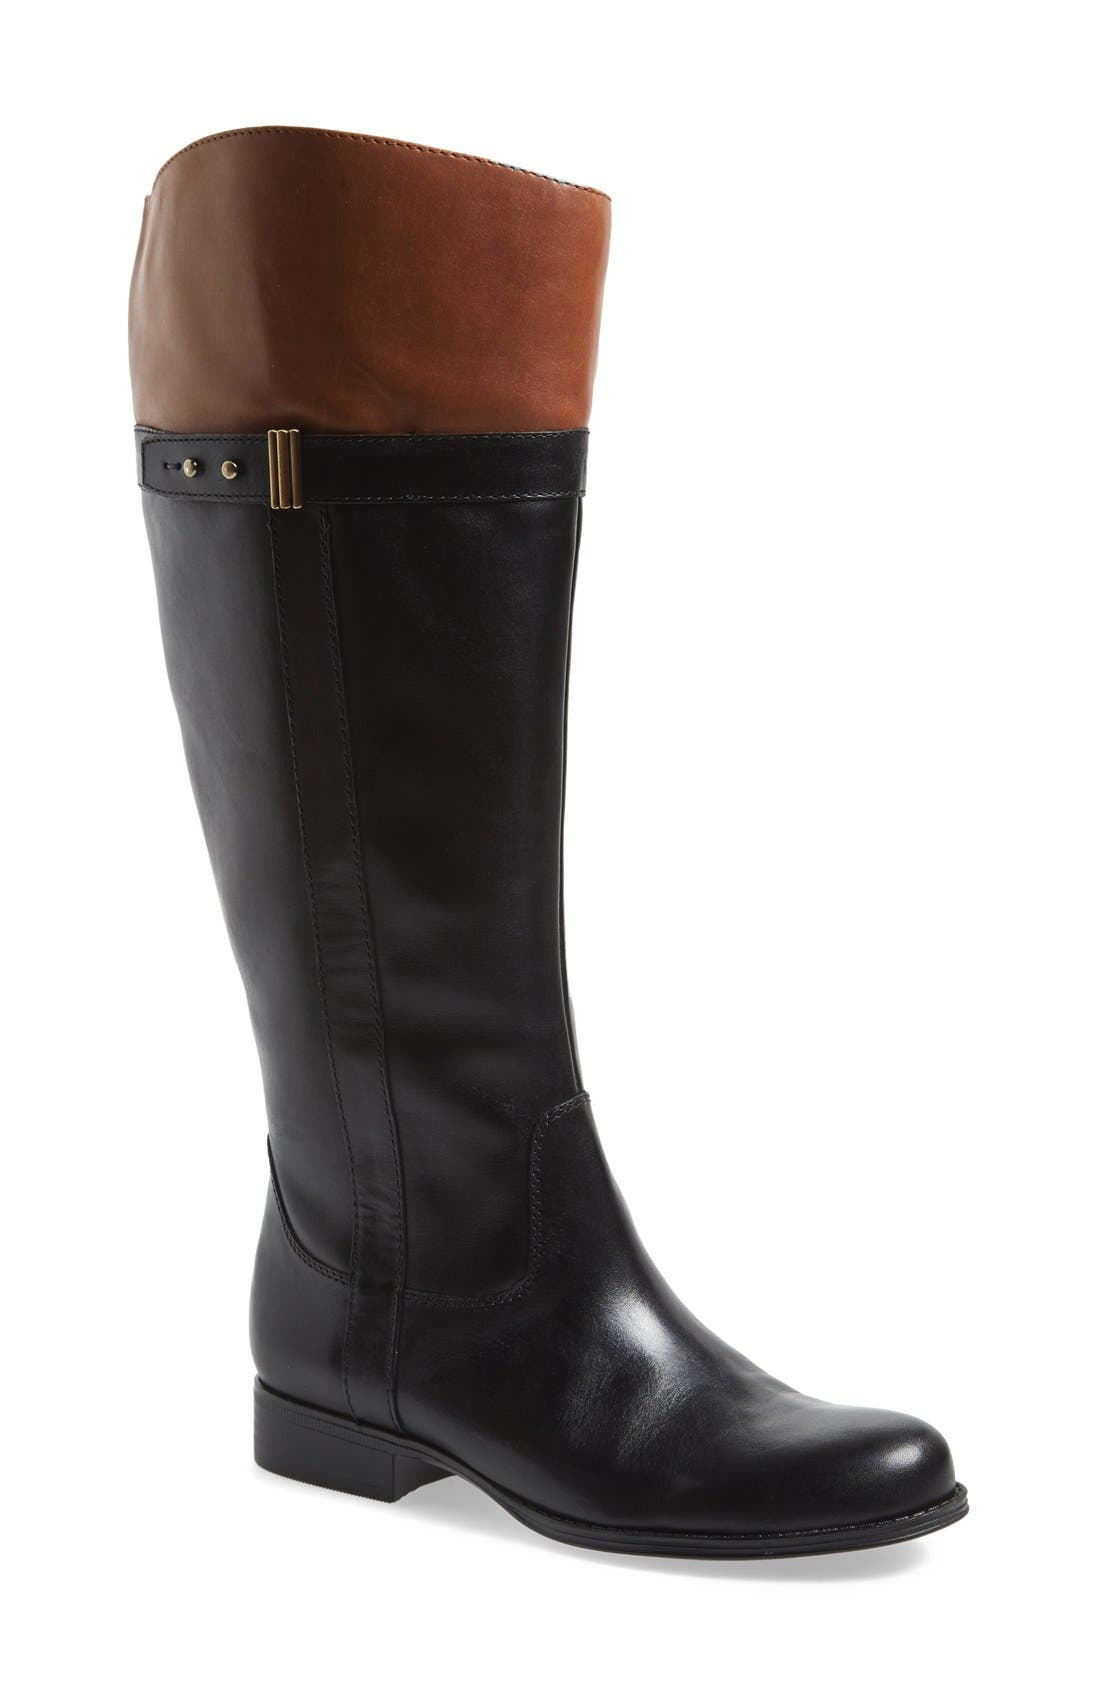 Alternate Image 1 Selected - Naturalizer 'Josette' Knee High Boot (Wide Calf) (Women)